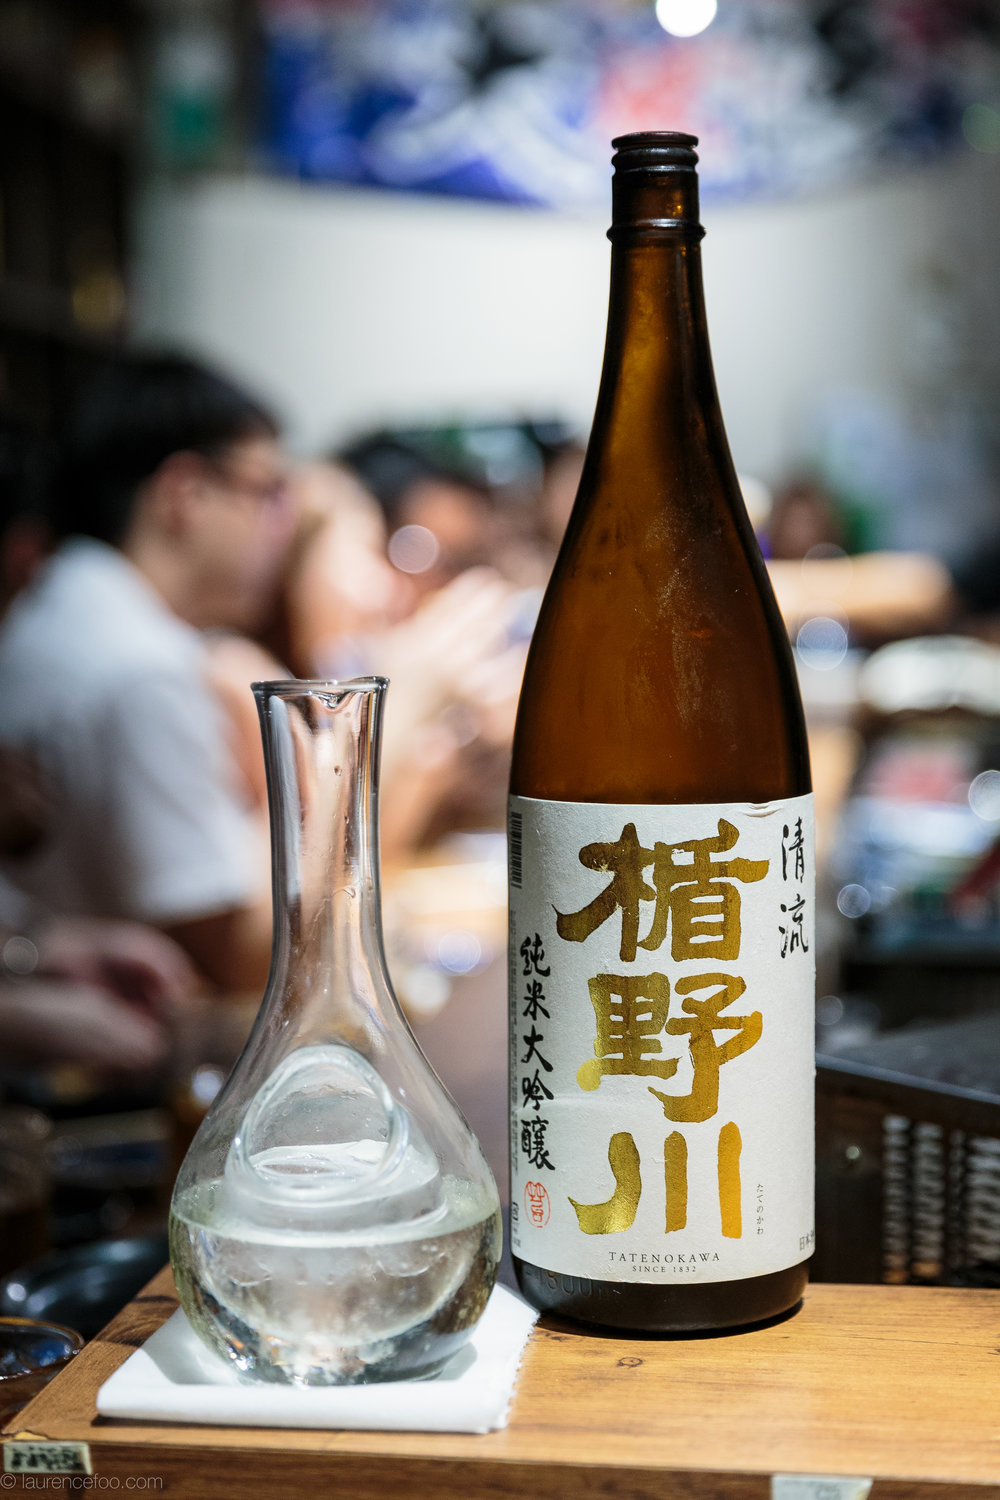 This Sake is ridiculously good